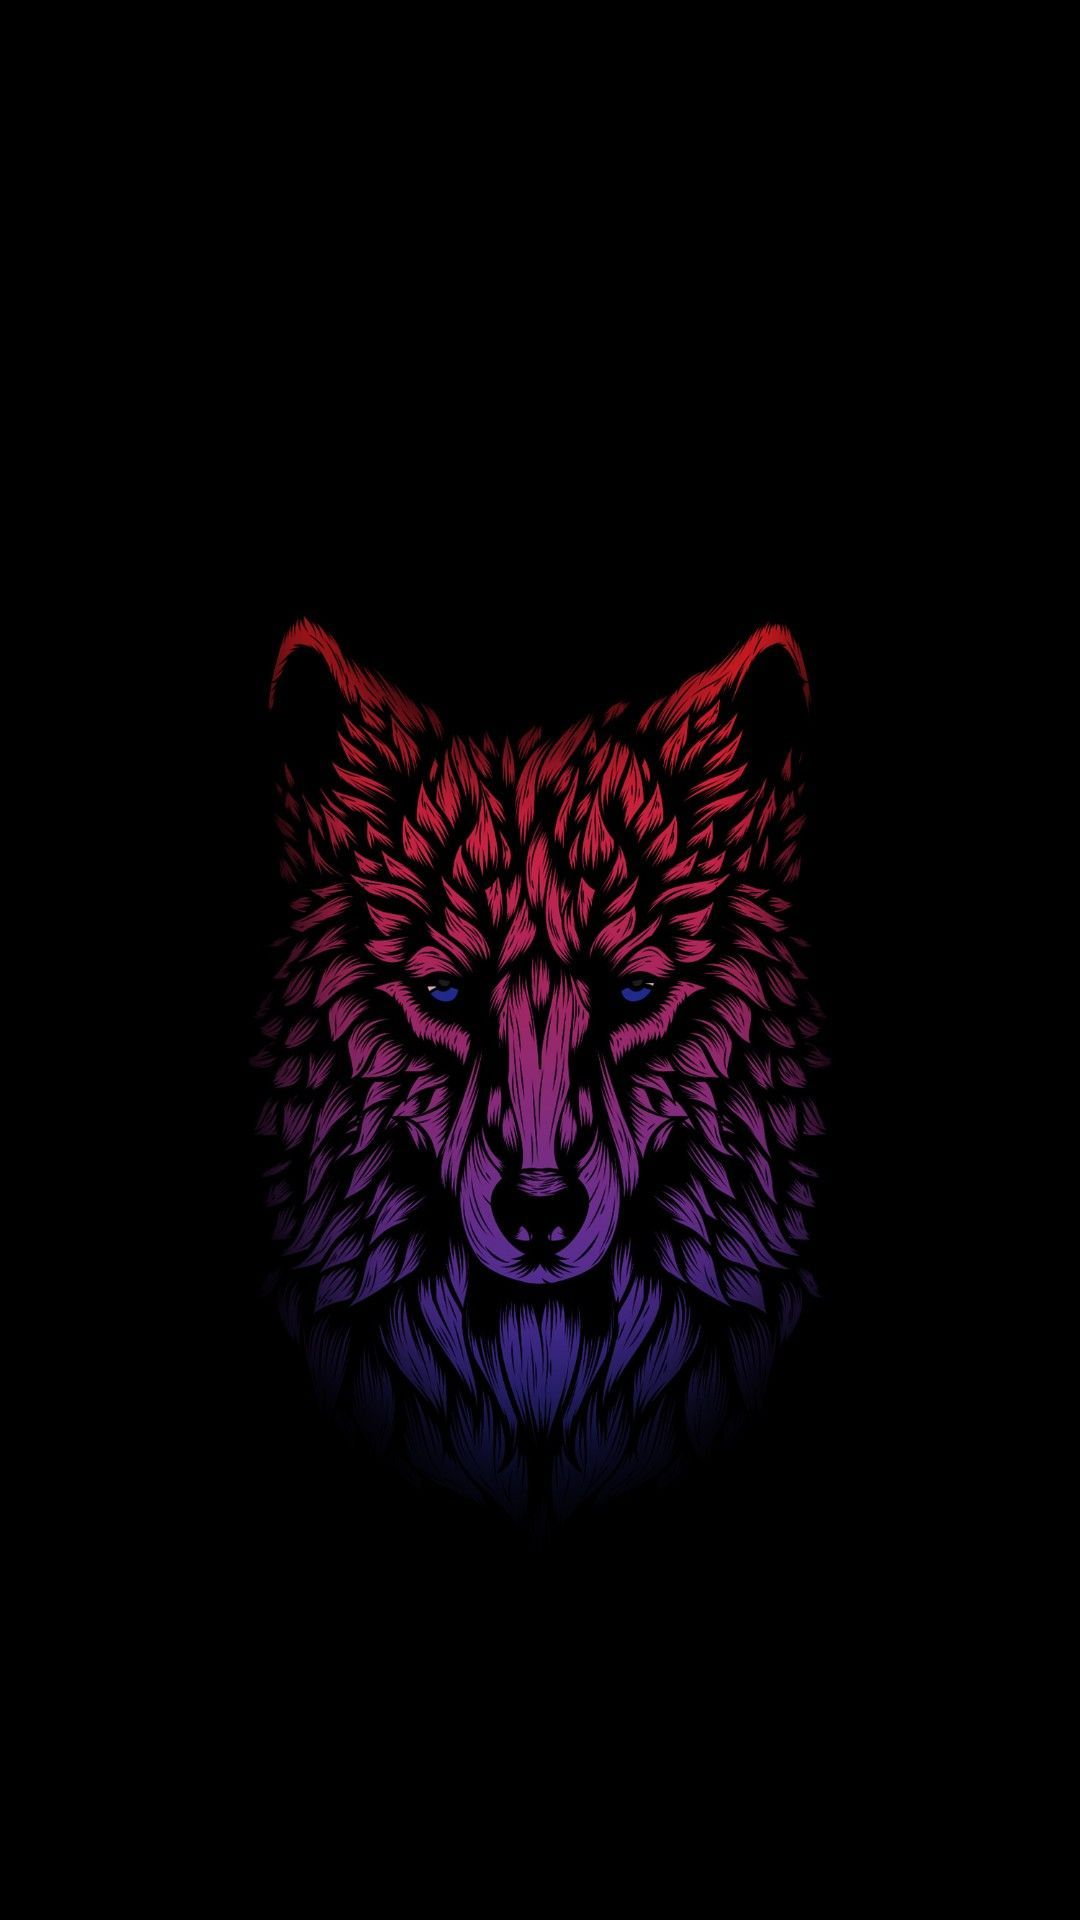 Epic Wolf Wallpaper Full Hd Hupages Download Iphone Wallpapers Wolf Wallpaper Geometric Wolf Wallpaper Iphone Wallpaper Wolf